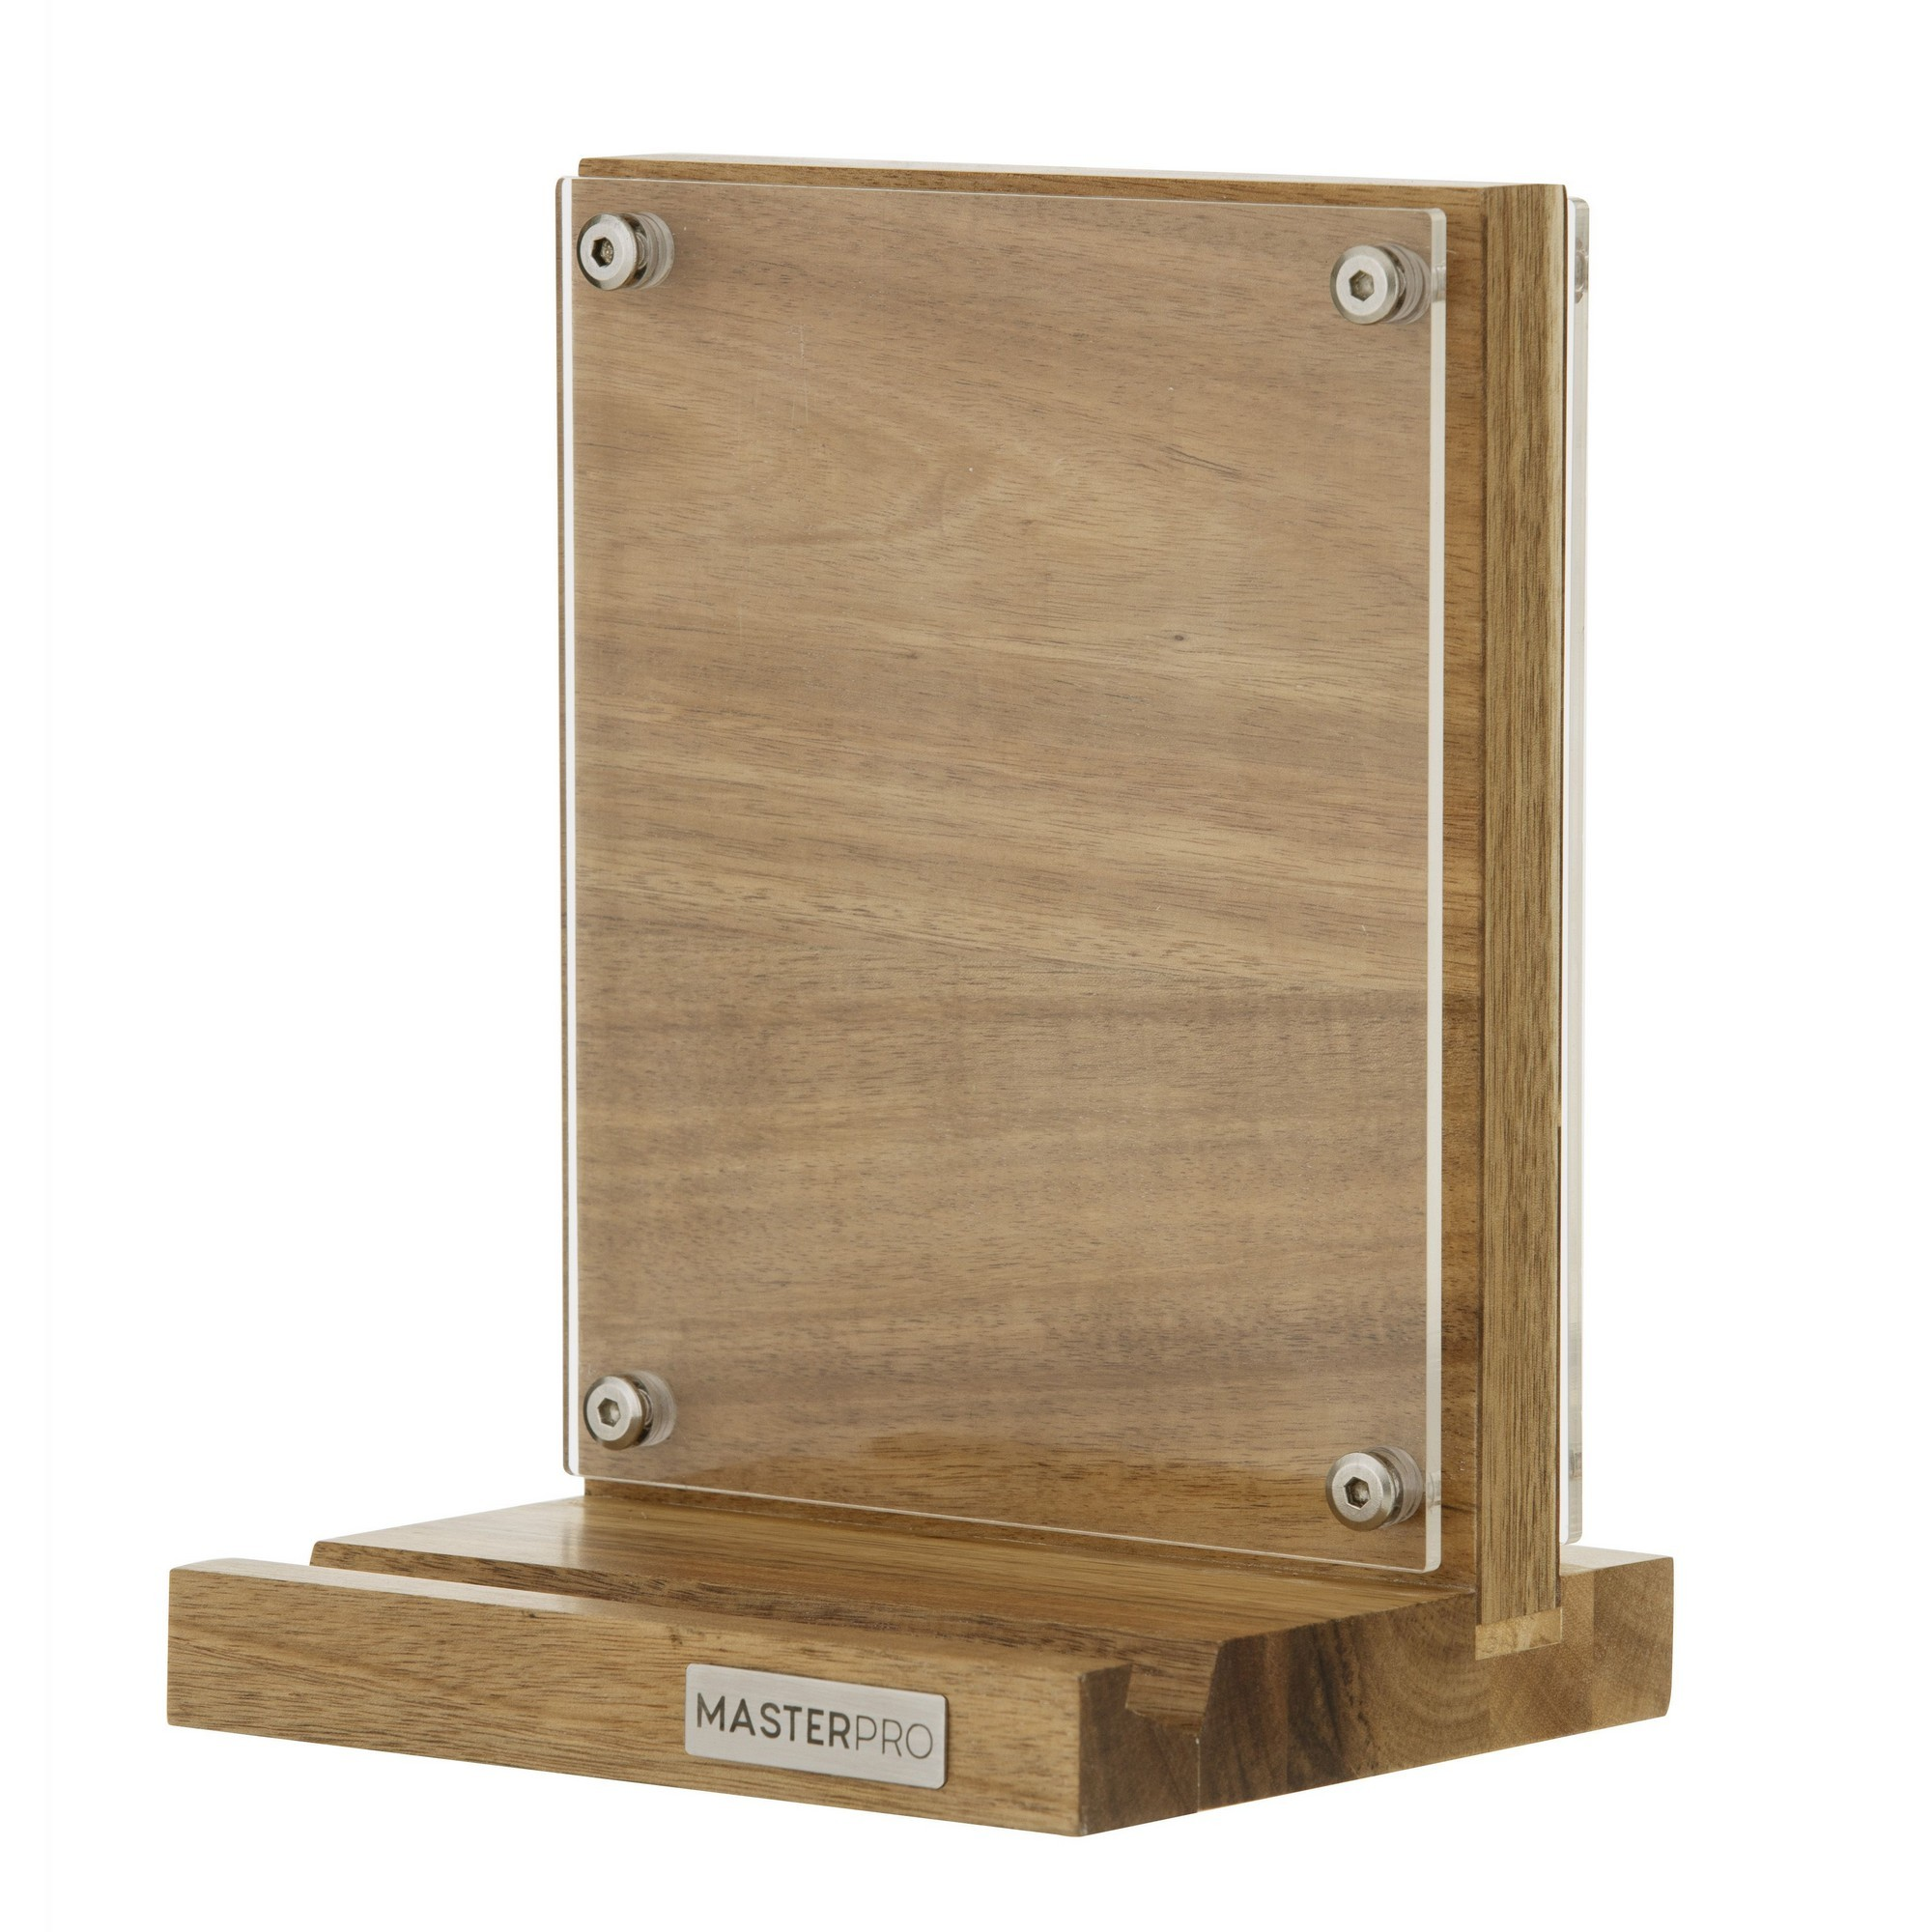 Masterpro Acacia Timber Magnetic Knife Block & Recipe Holder